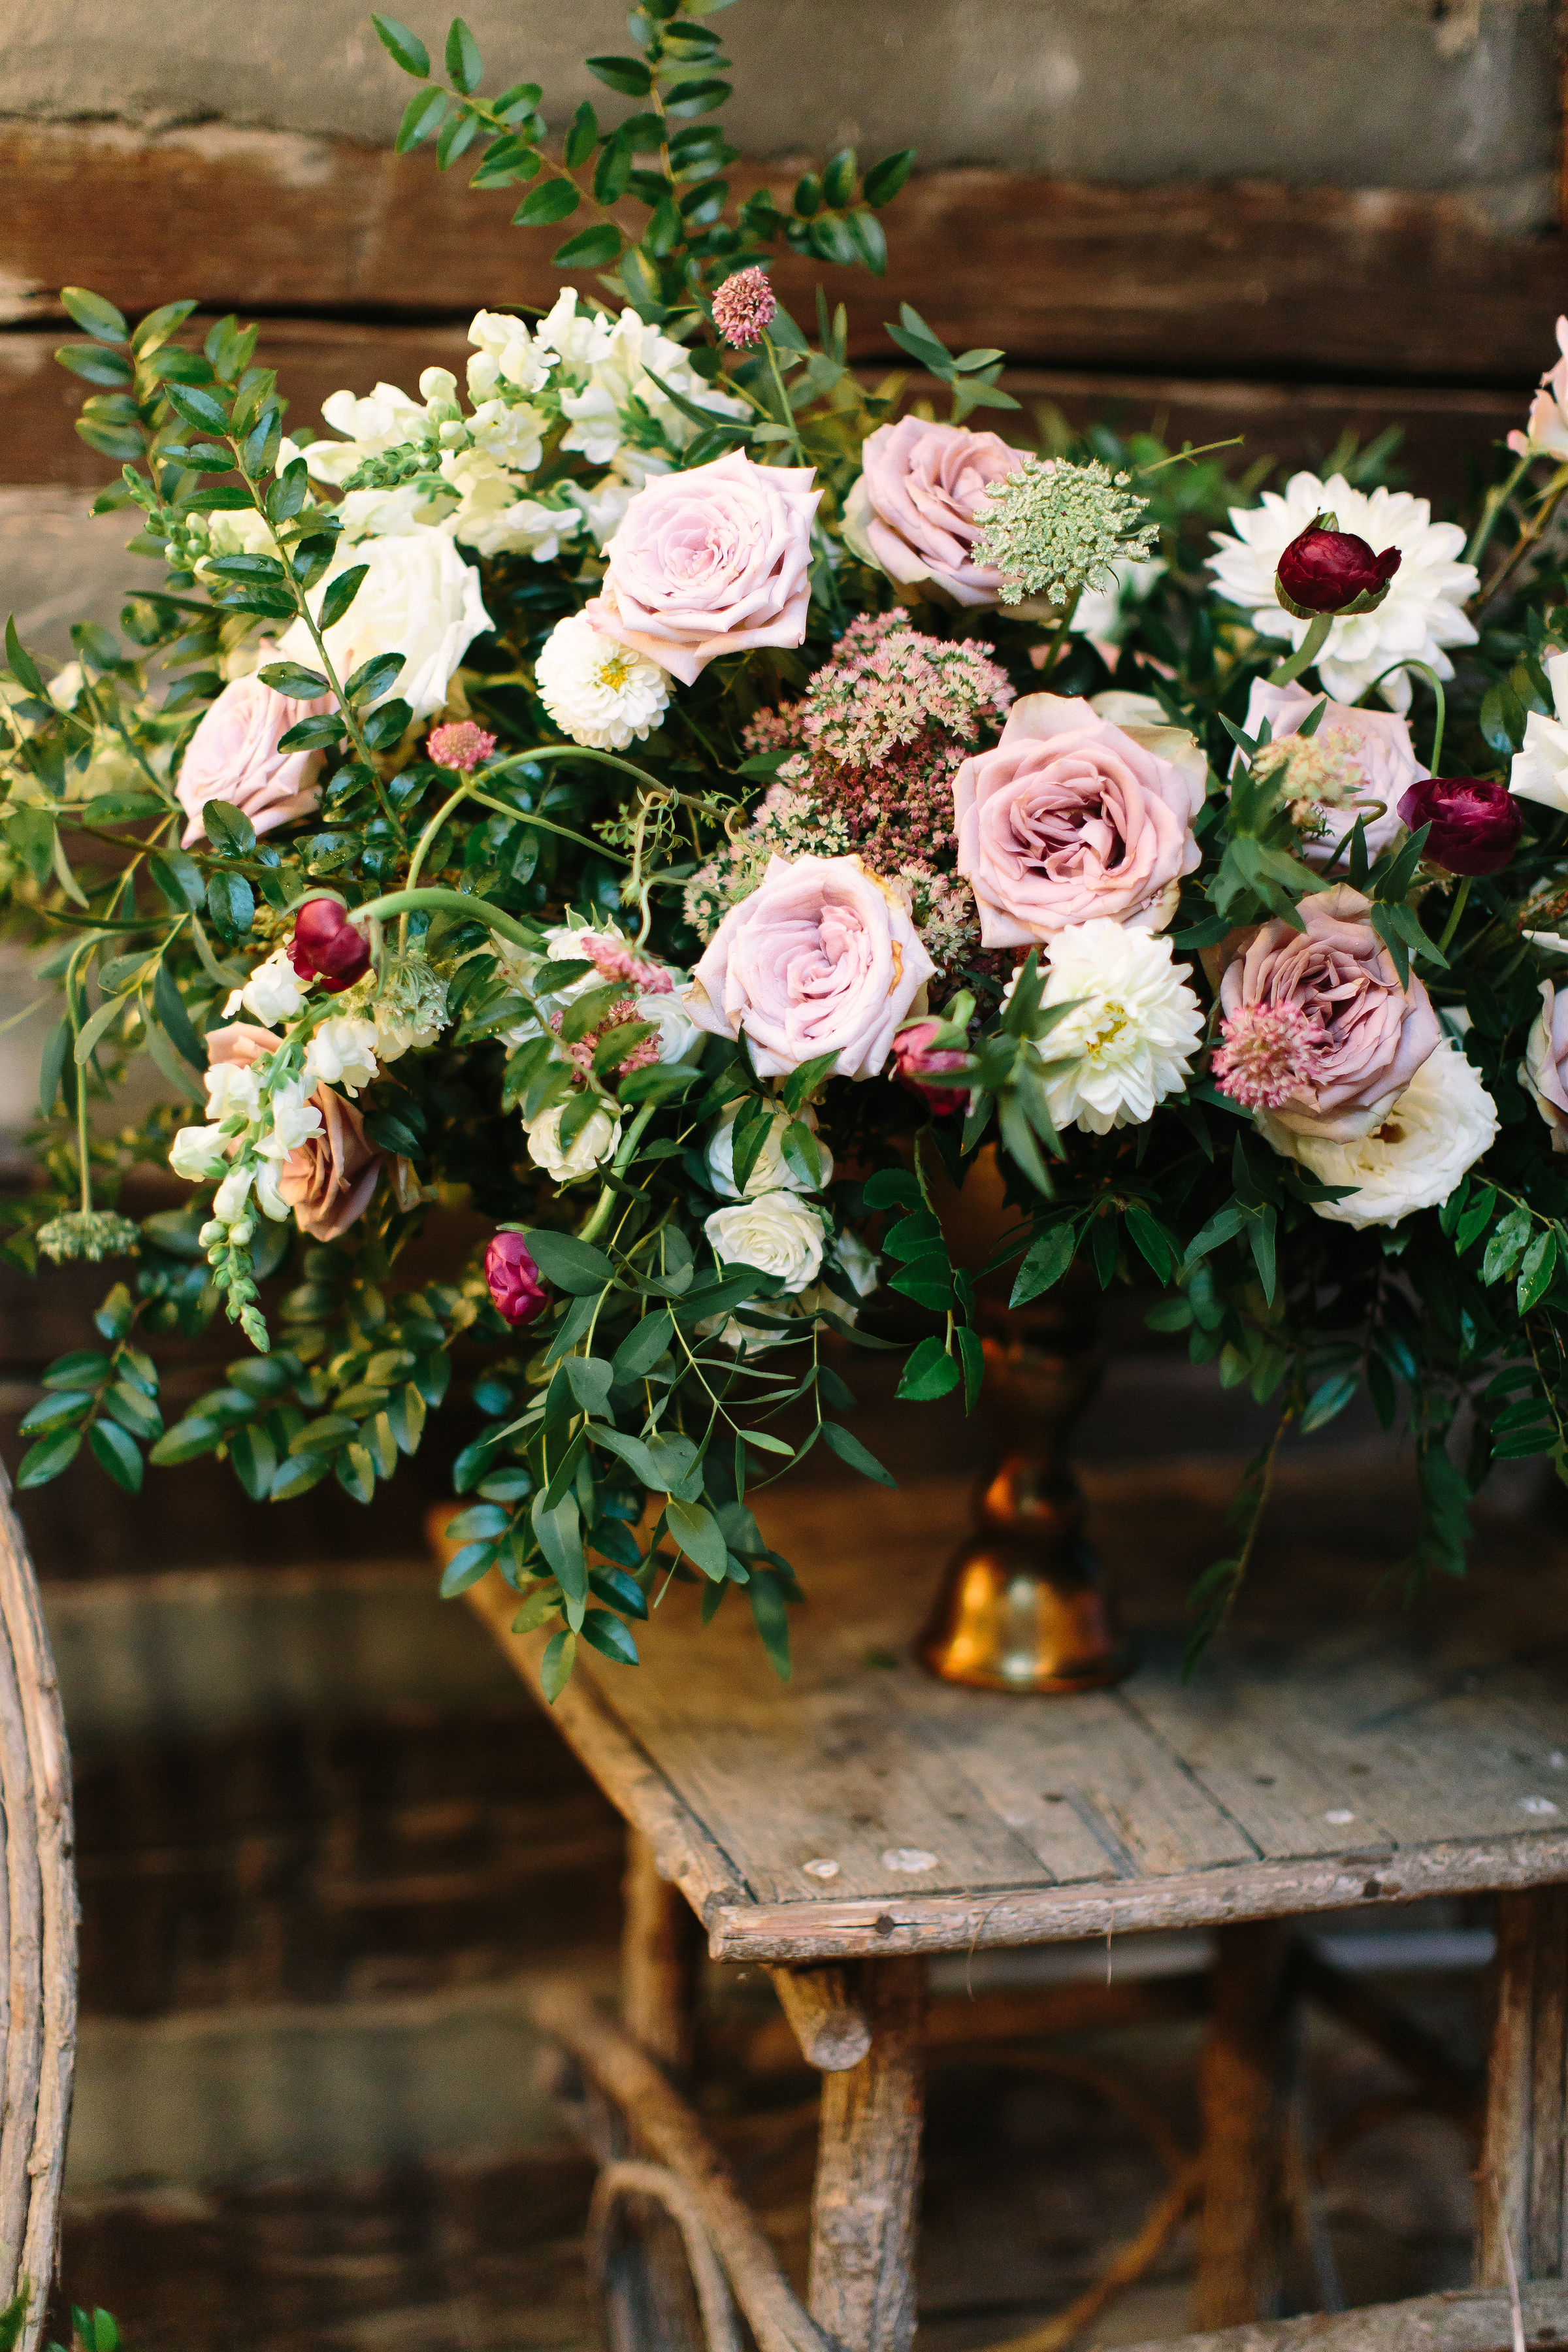 Large floral arrangement in hues of dusty mauve, blush, and ivory with asymmetrical, untamed greenery // Nashville, TN Floral Design